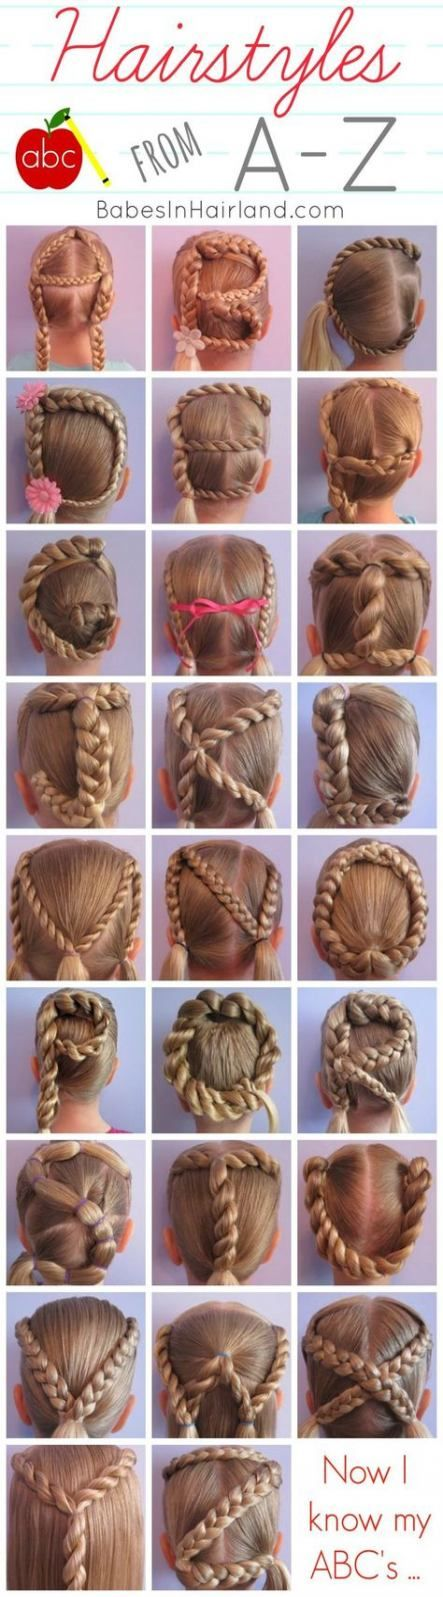 Braids for kids hair latest hairstyles 65 New ideas